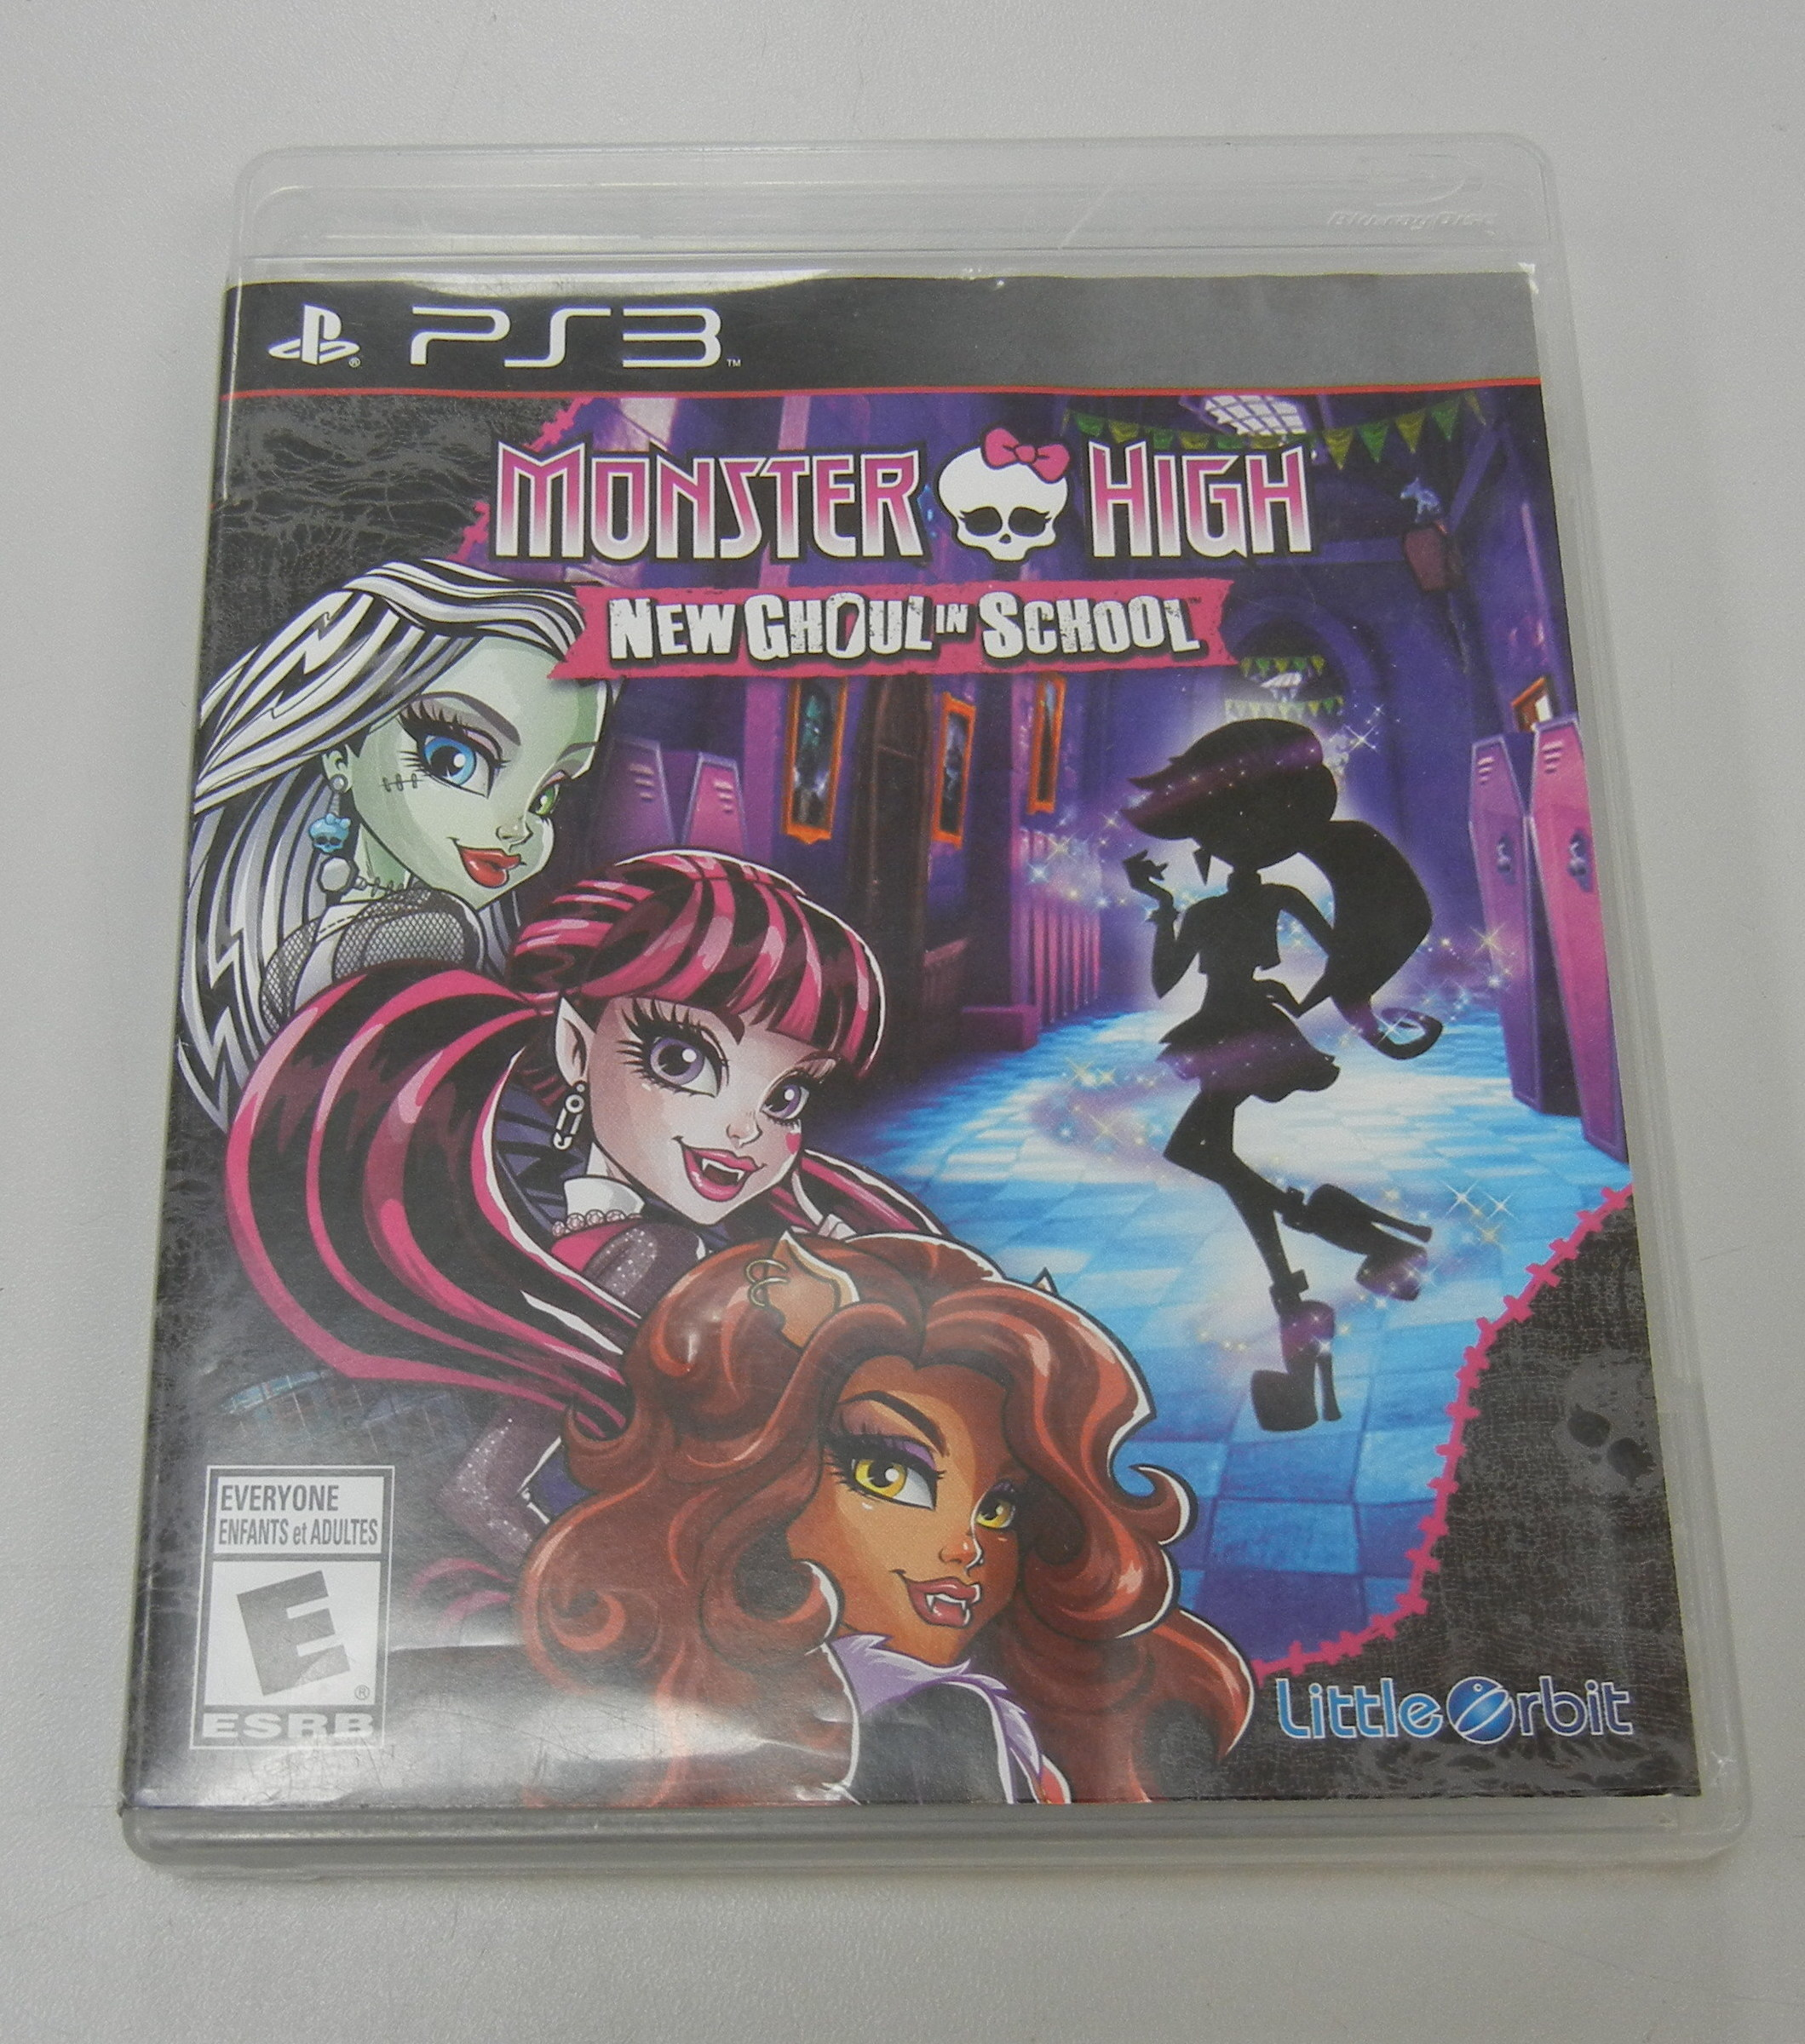 MONSTER HIGH: NEW GHOUL IN SCHOOL - PS 3 GAME